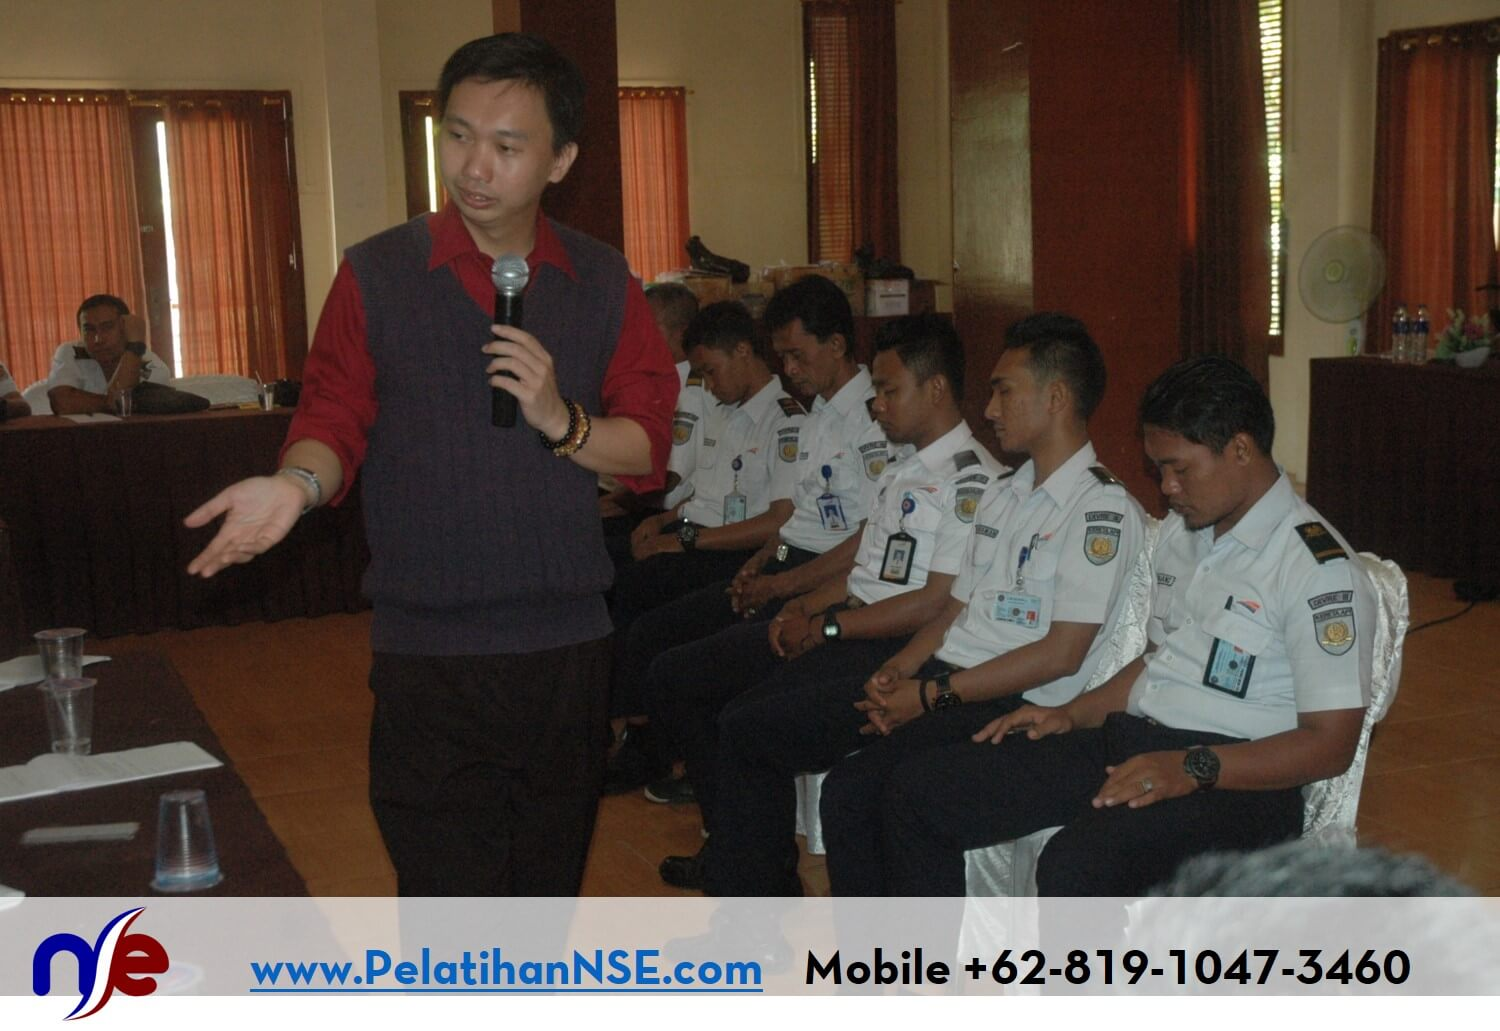 NSE Basic Self Empowerment KAI 14-15 September 2016 - Hipnoterapi Sejenak